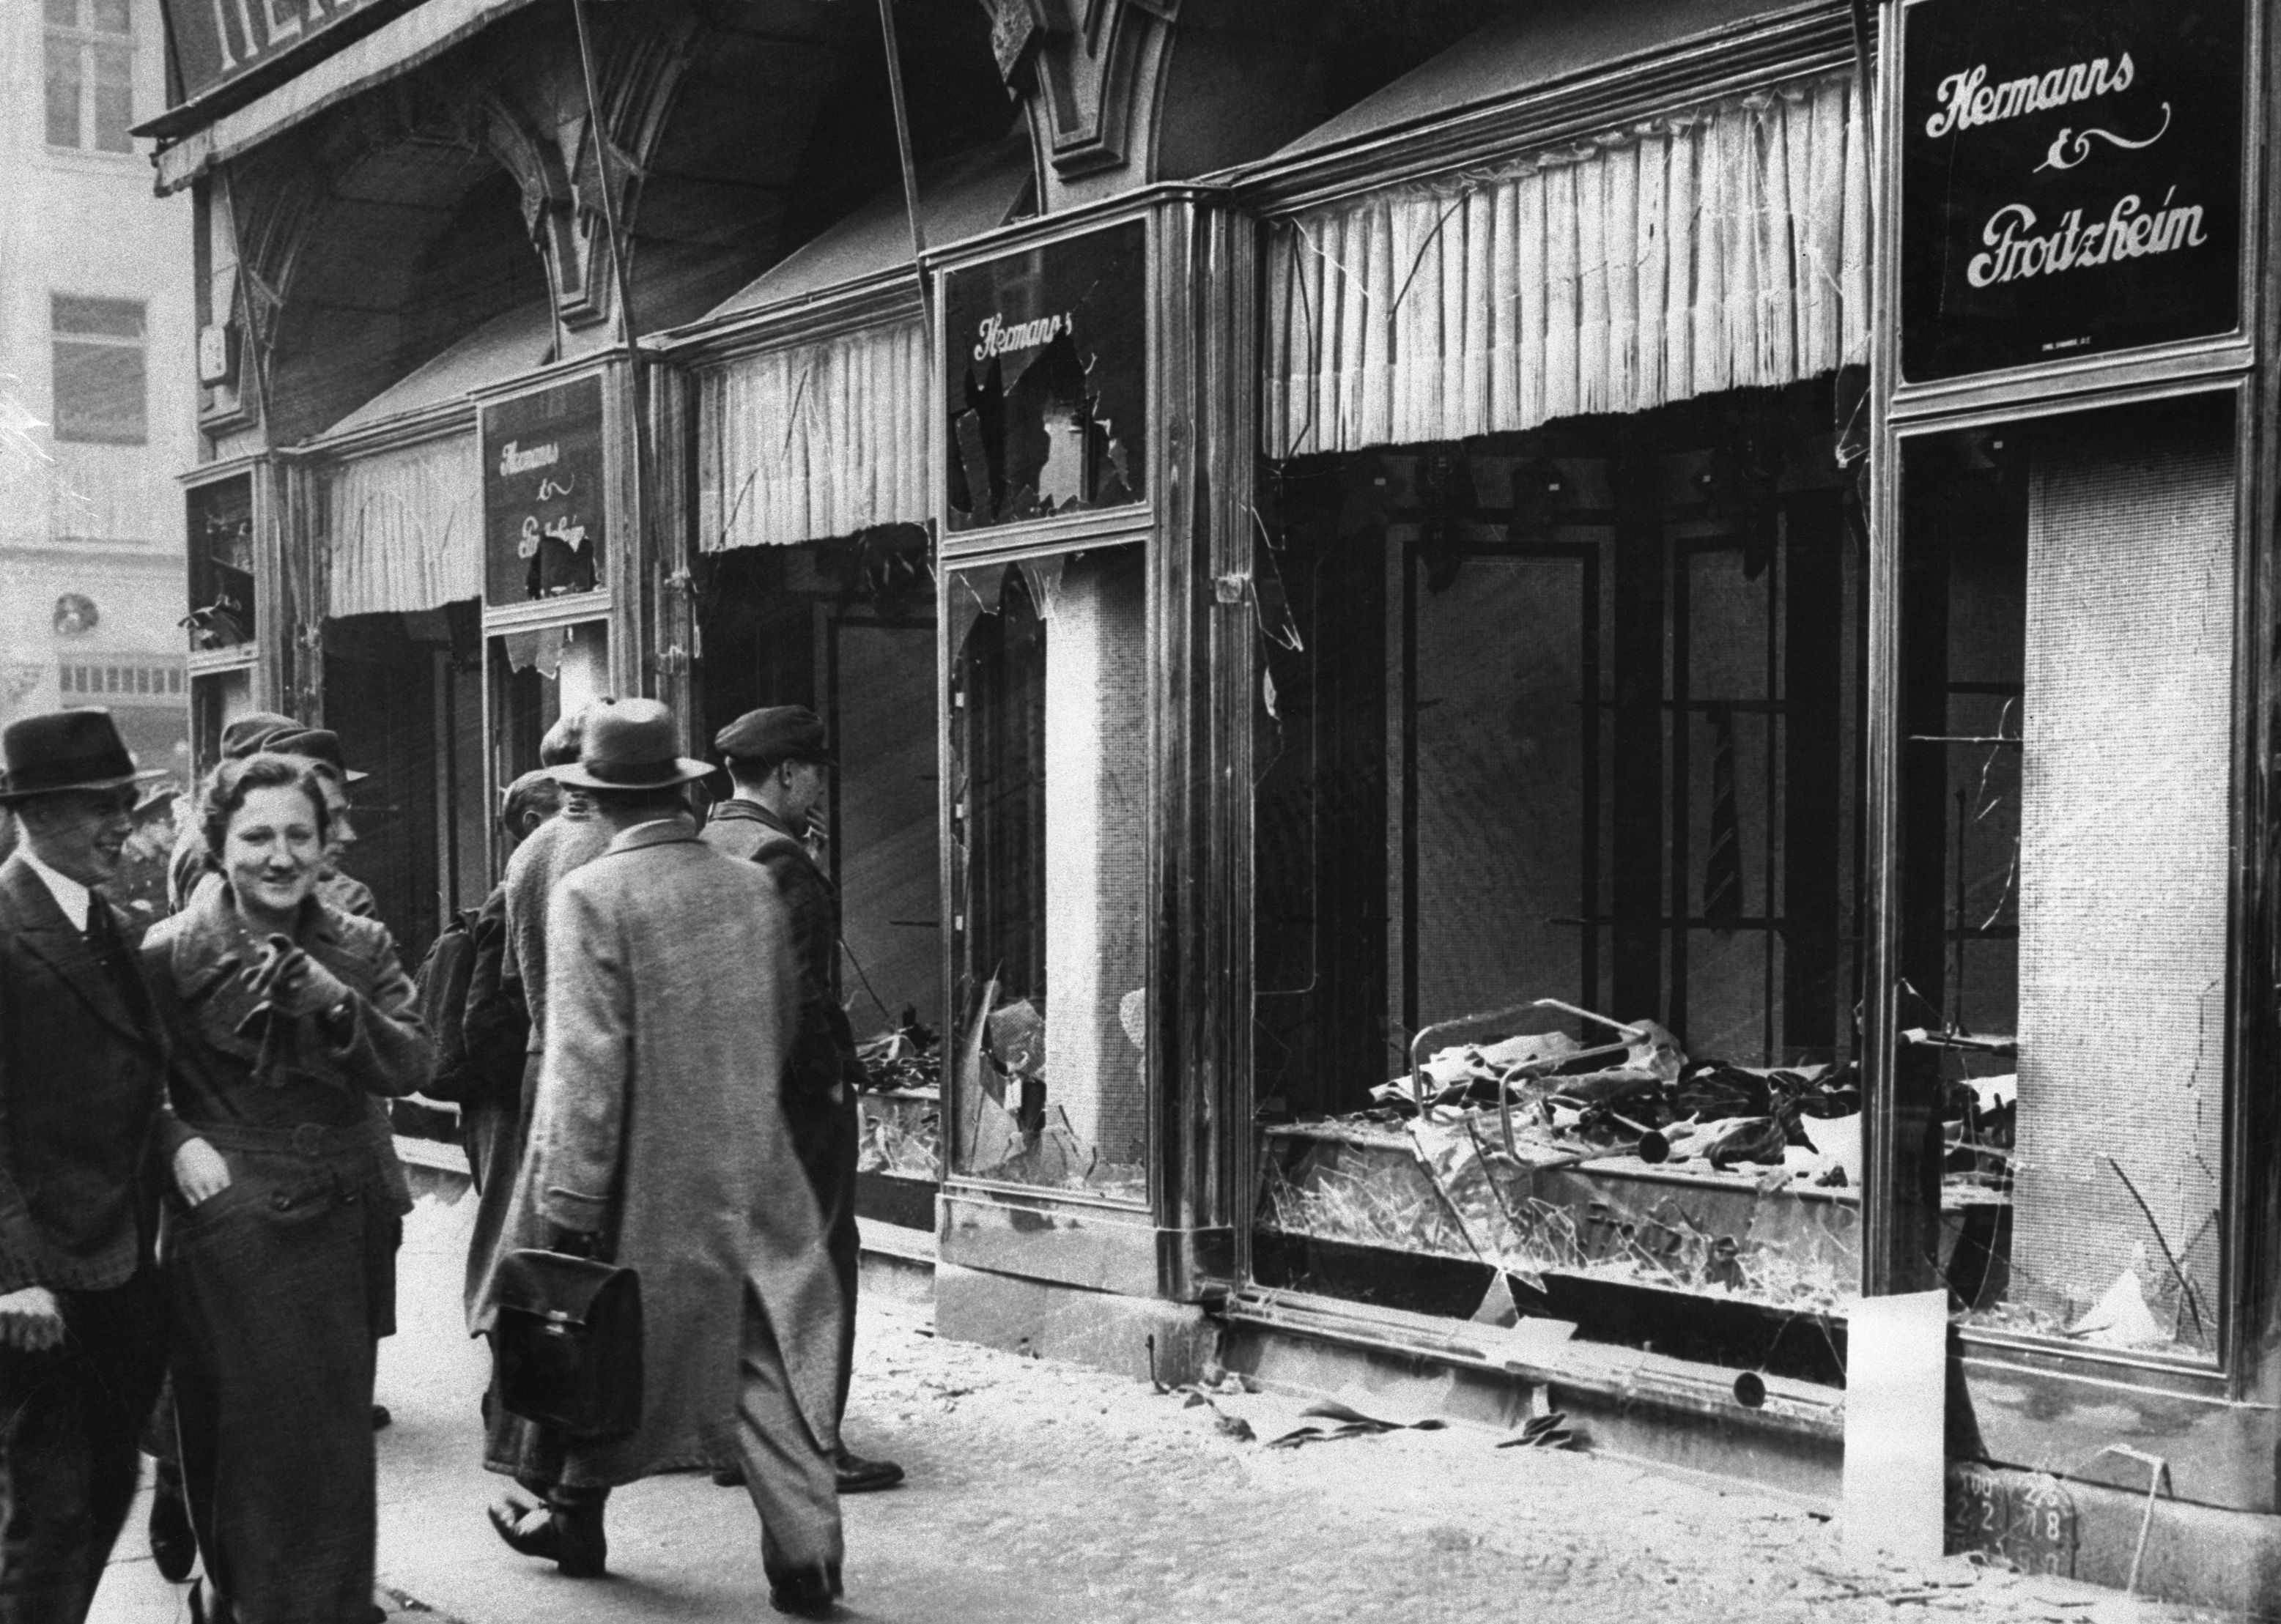 Damaged Jewish-owned storefront in Berlin after the Kristallnacht riot.